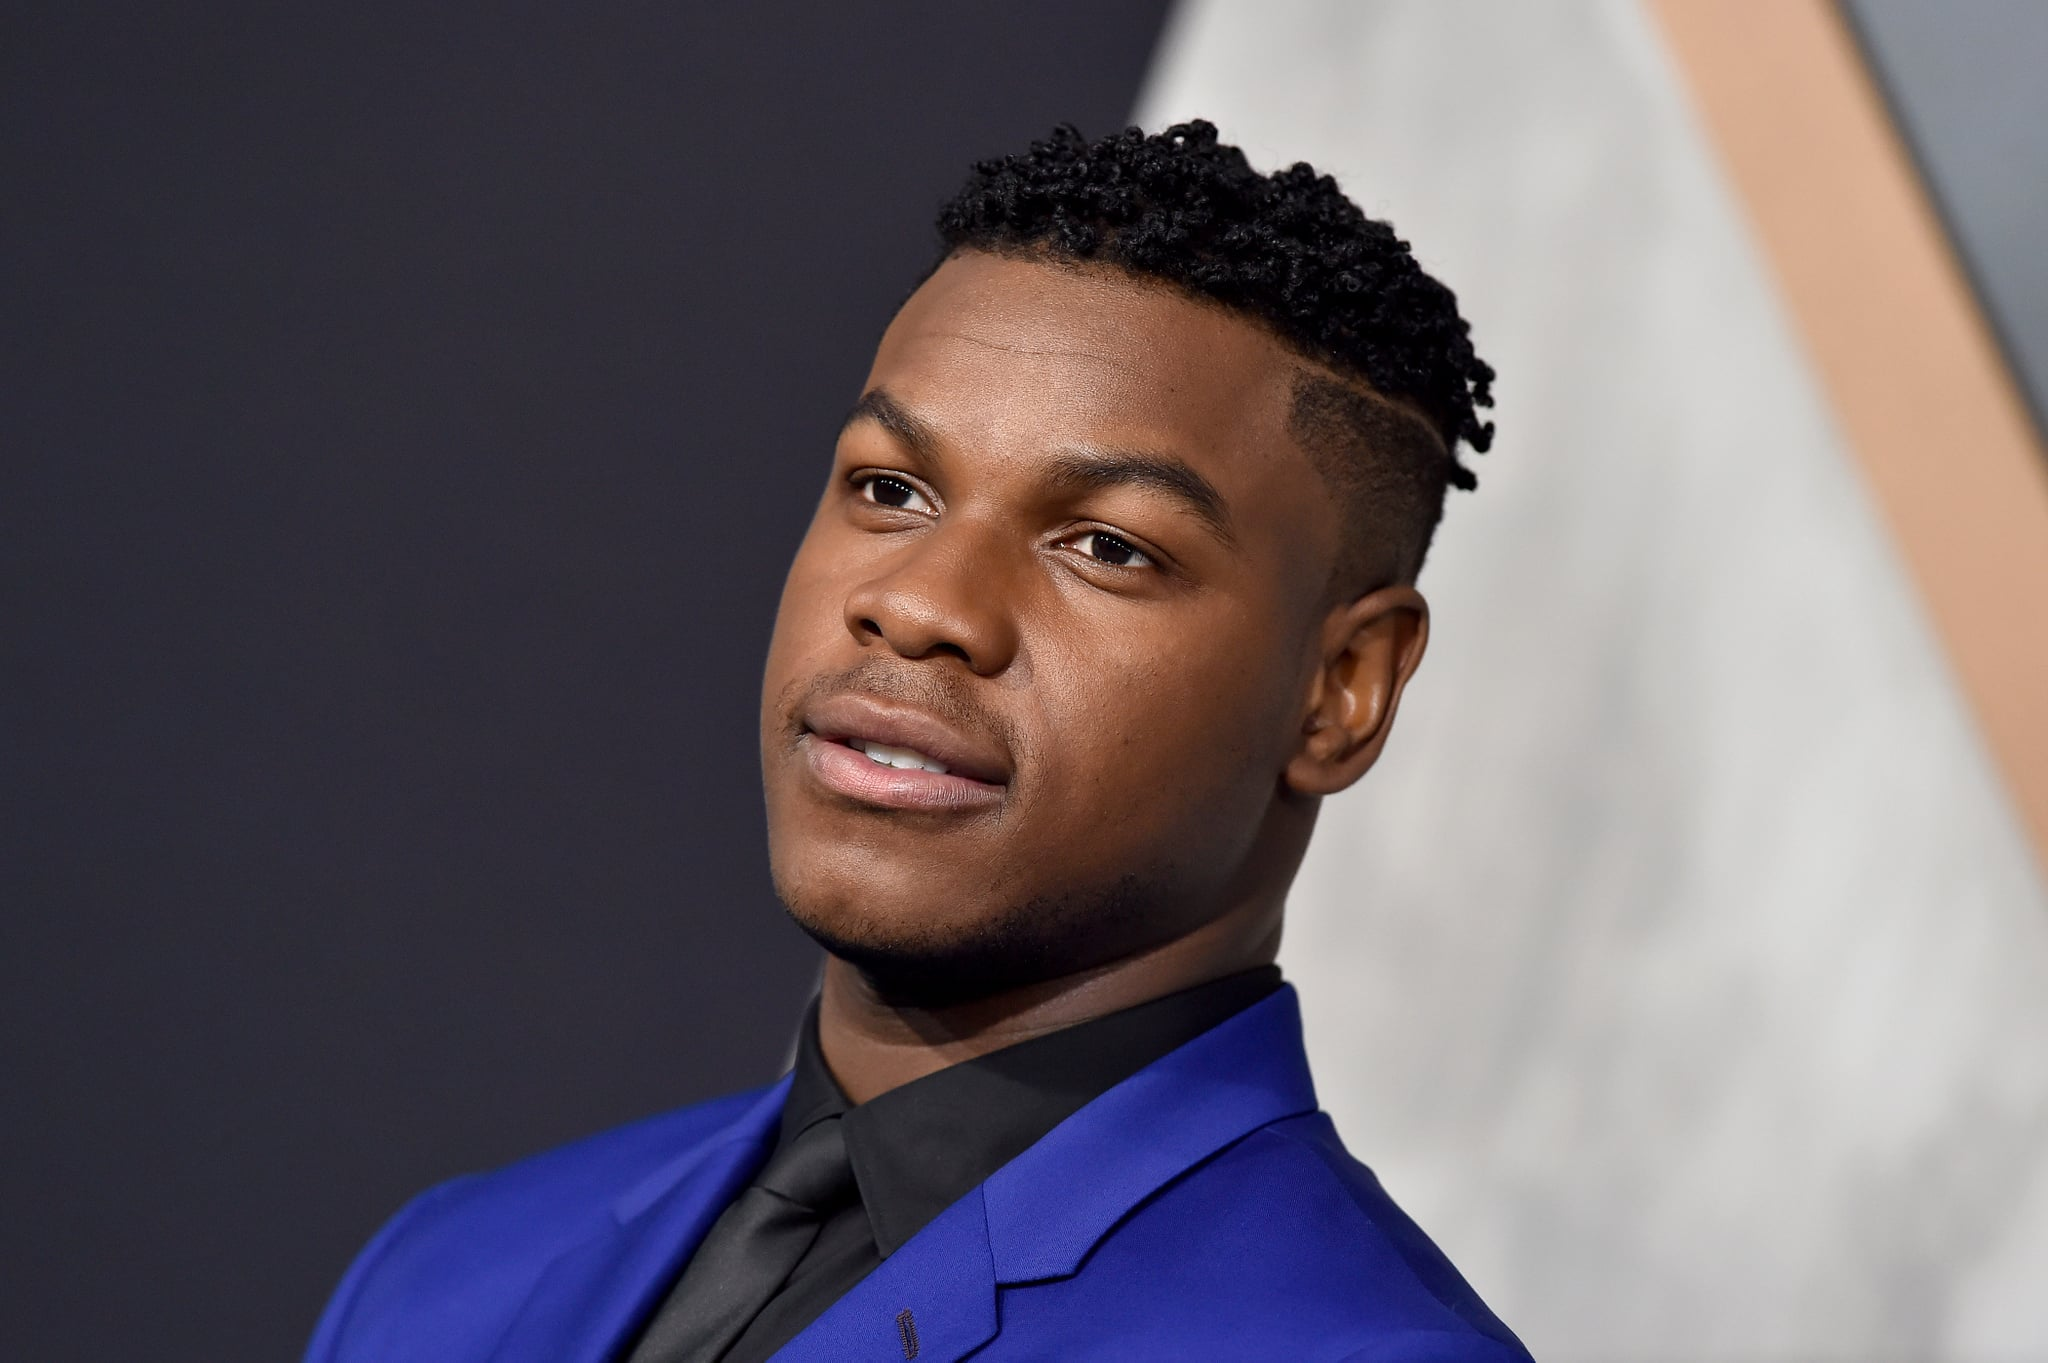 HOLLYWOOD, CA - MARCH 21:  Actor John Boyega arrives at Universal's 'Pacific Rim Uprising' premiere at TCL Chinese Theatre IMAX on March 21, 2018 in Hollywood, California.  (Photo by Axelle/Bauer-Griffin/FilmMagic)